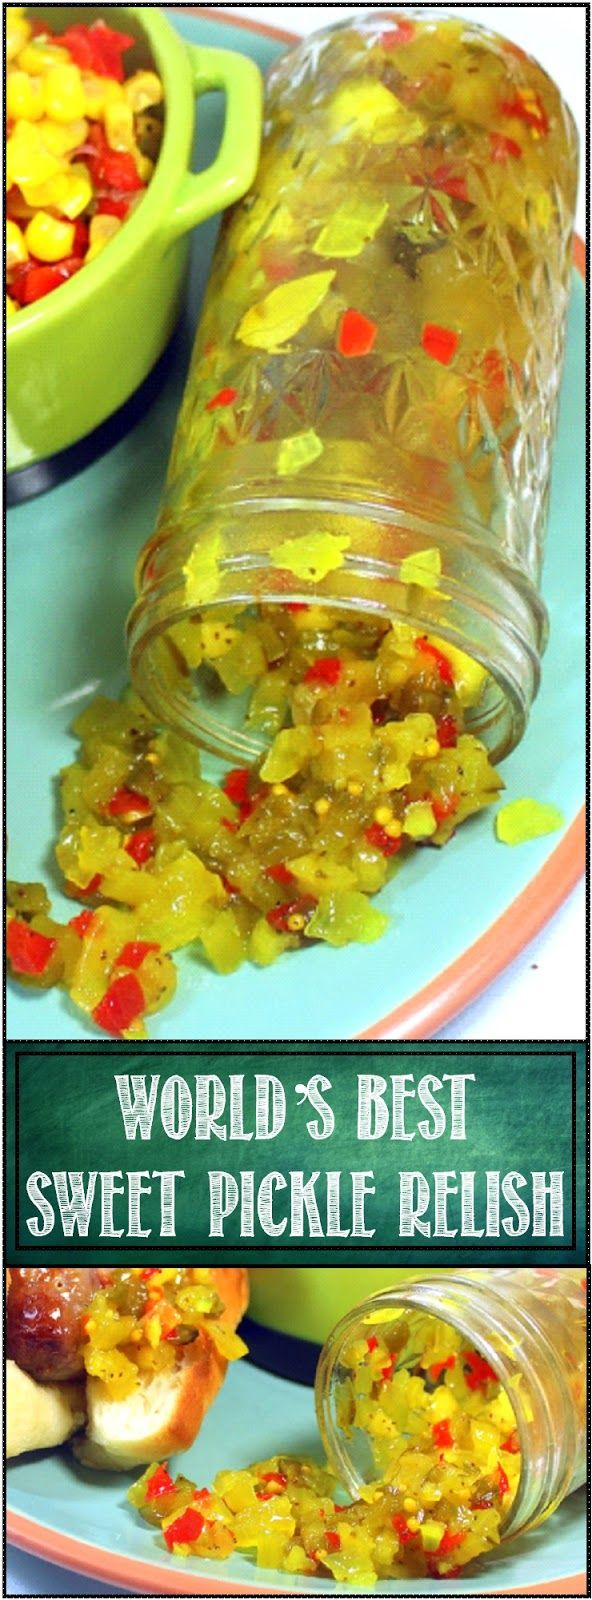 52 Ways to Cook: WORLD's BEST Sweet Pickle Rel…